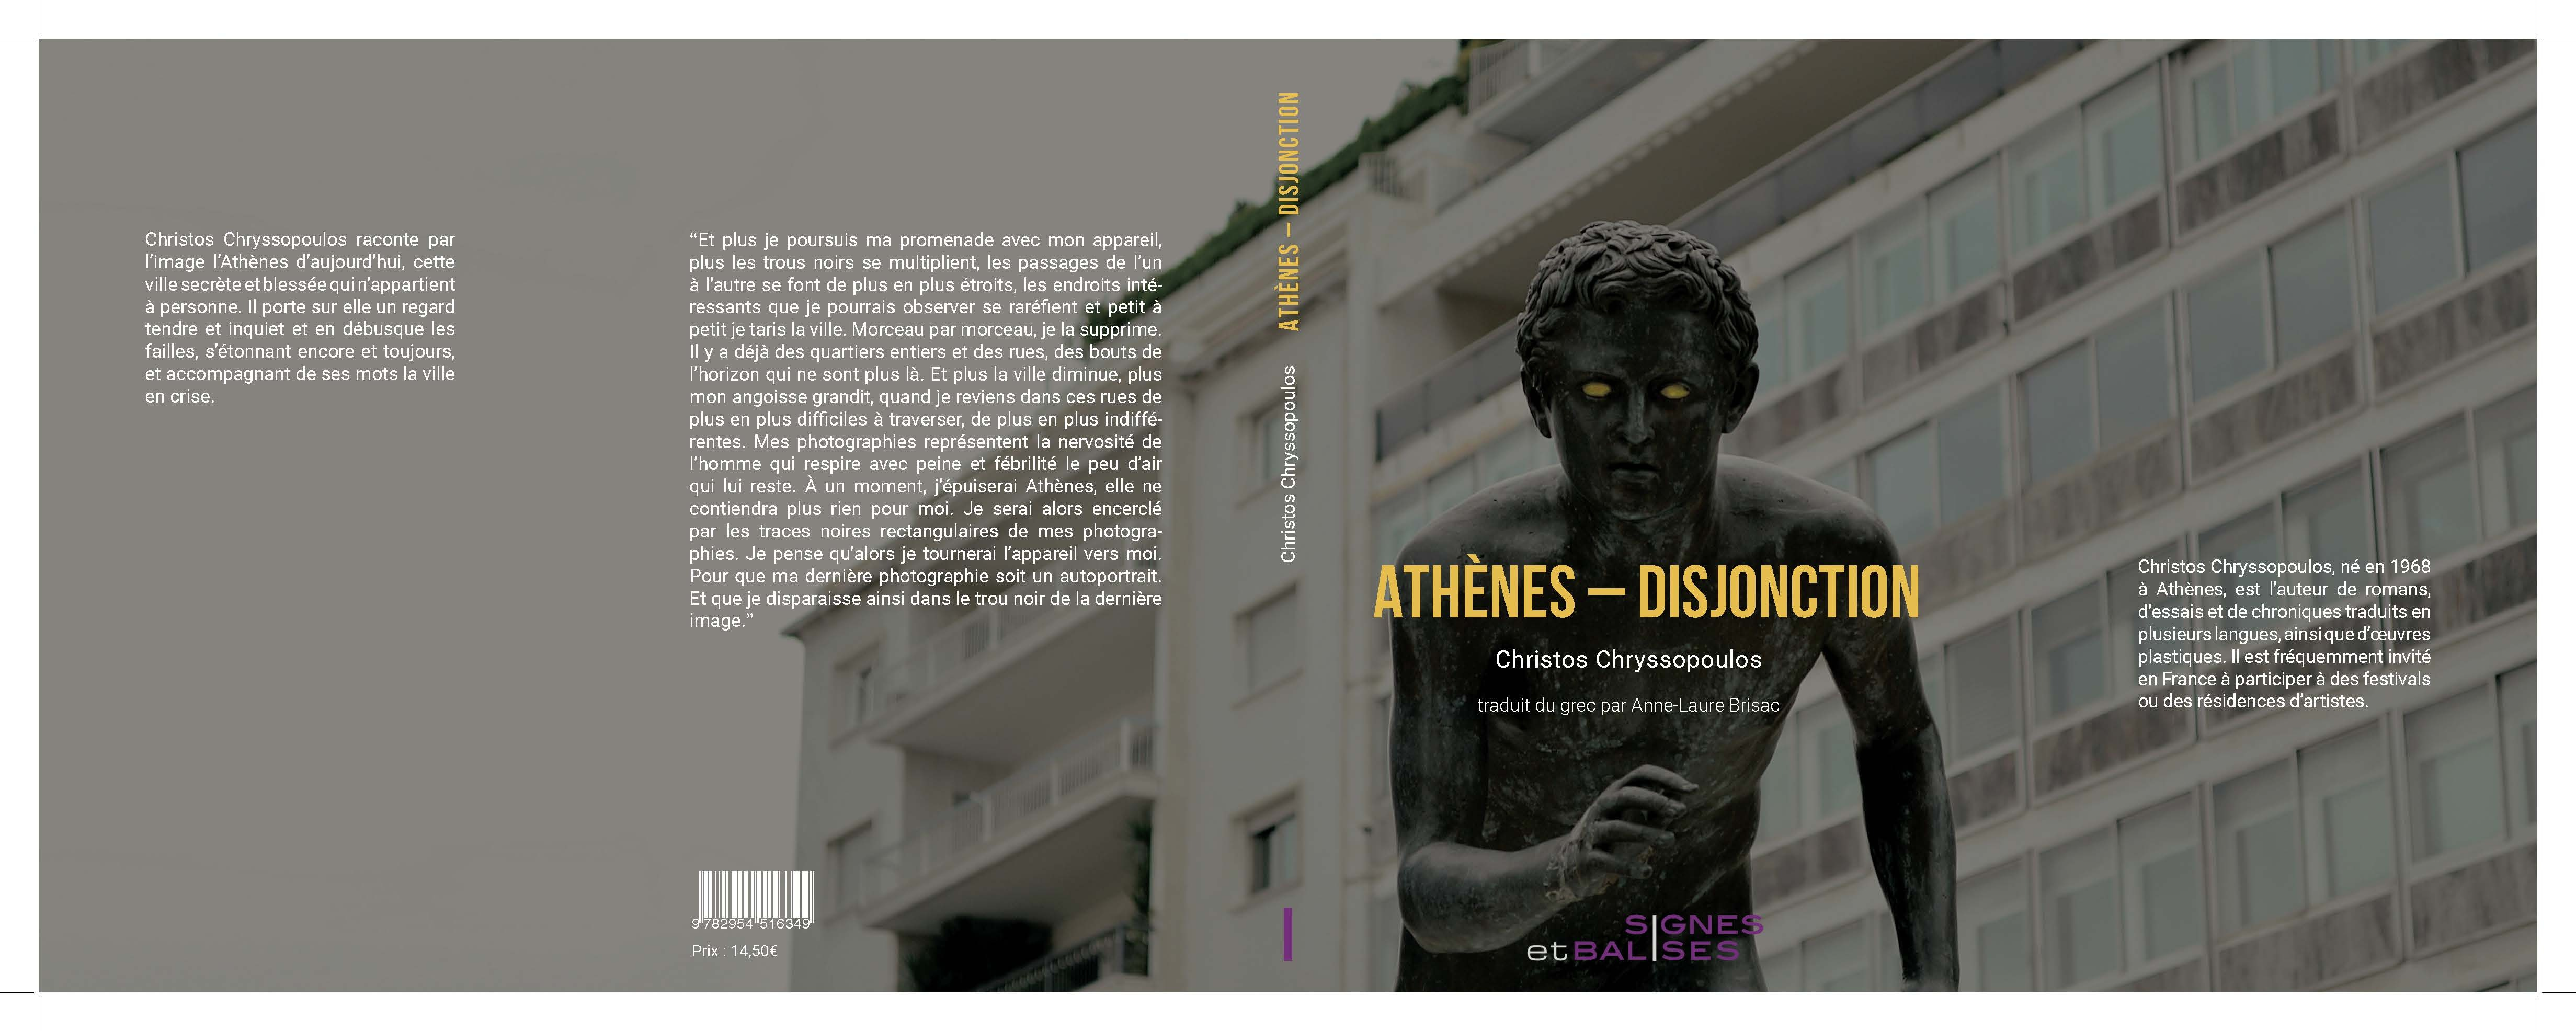 ATHENES - DISJONCTION